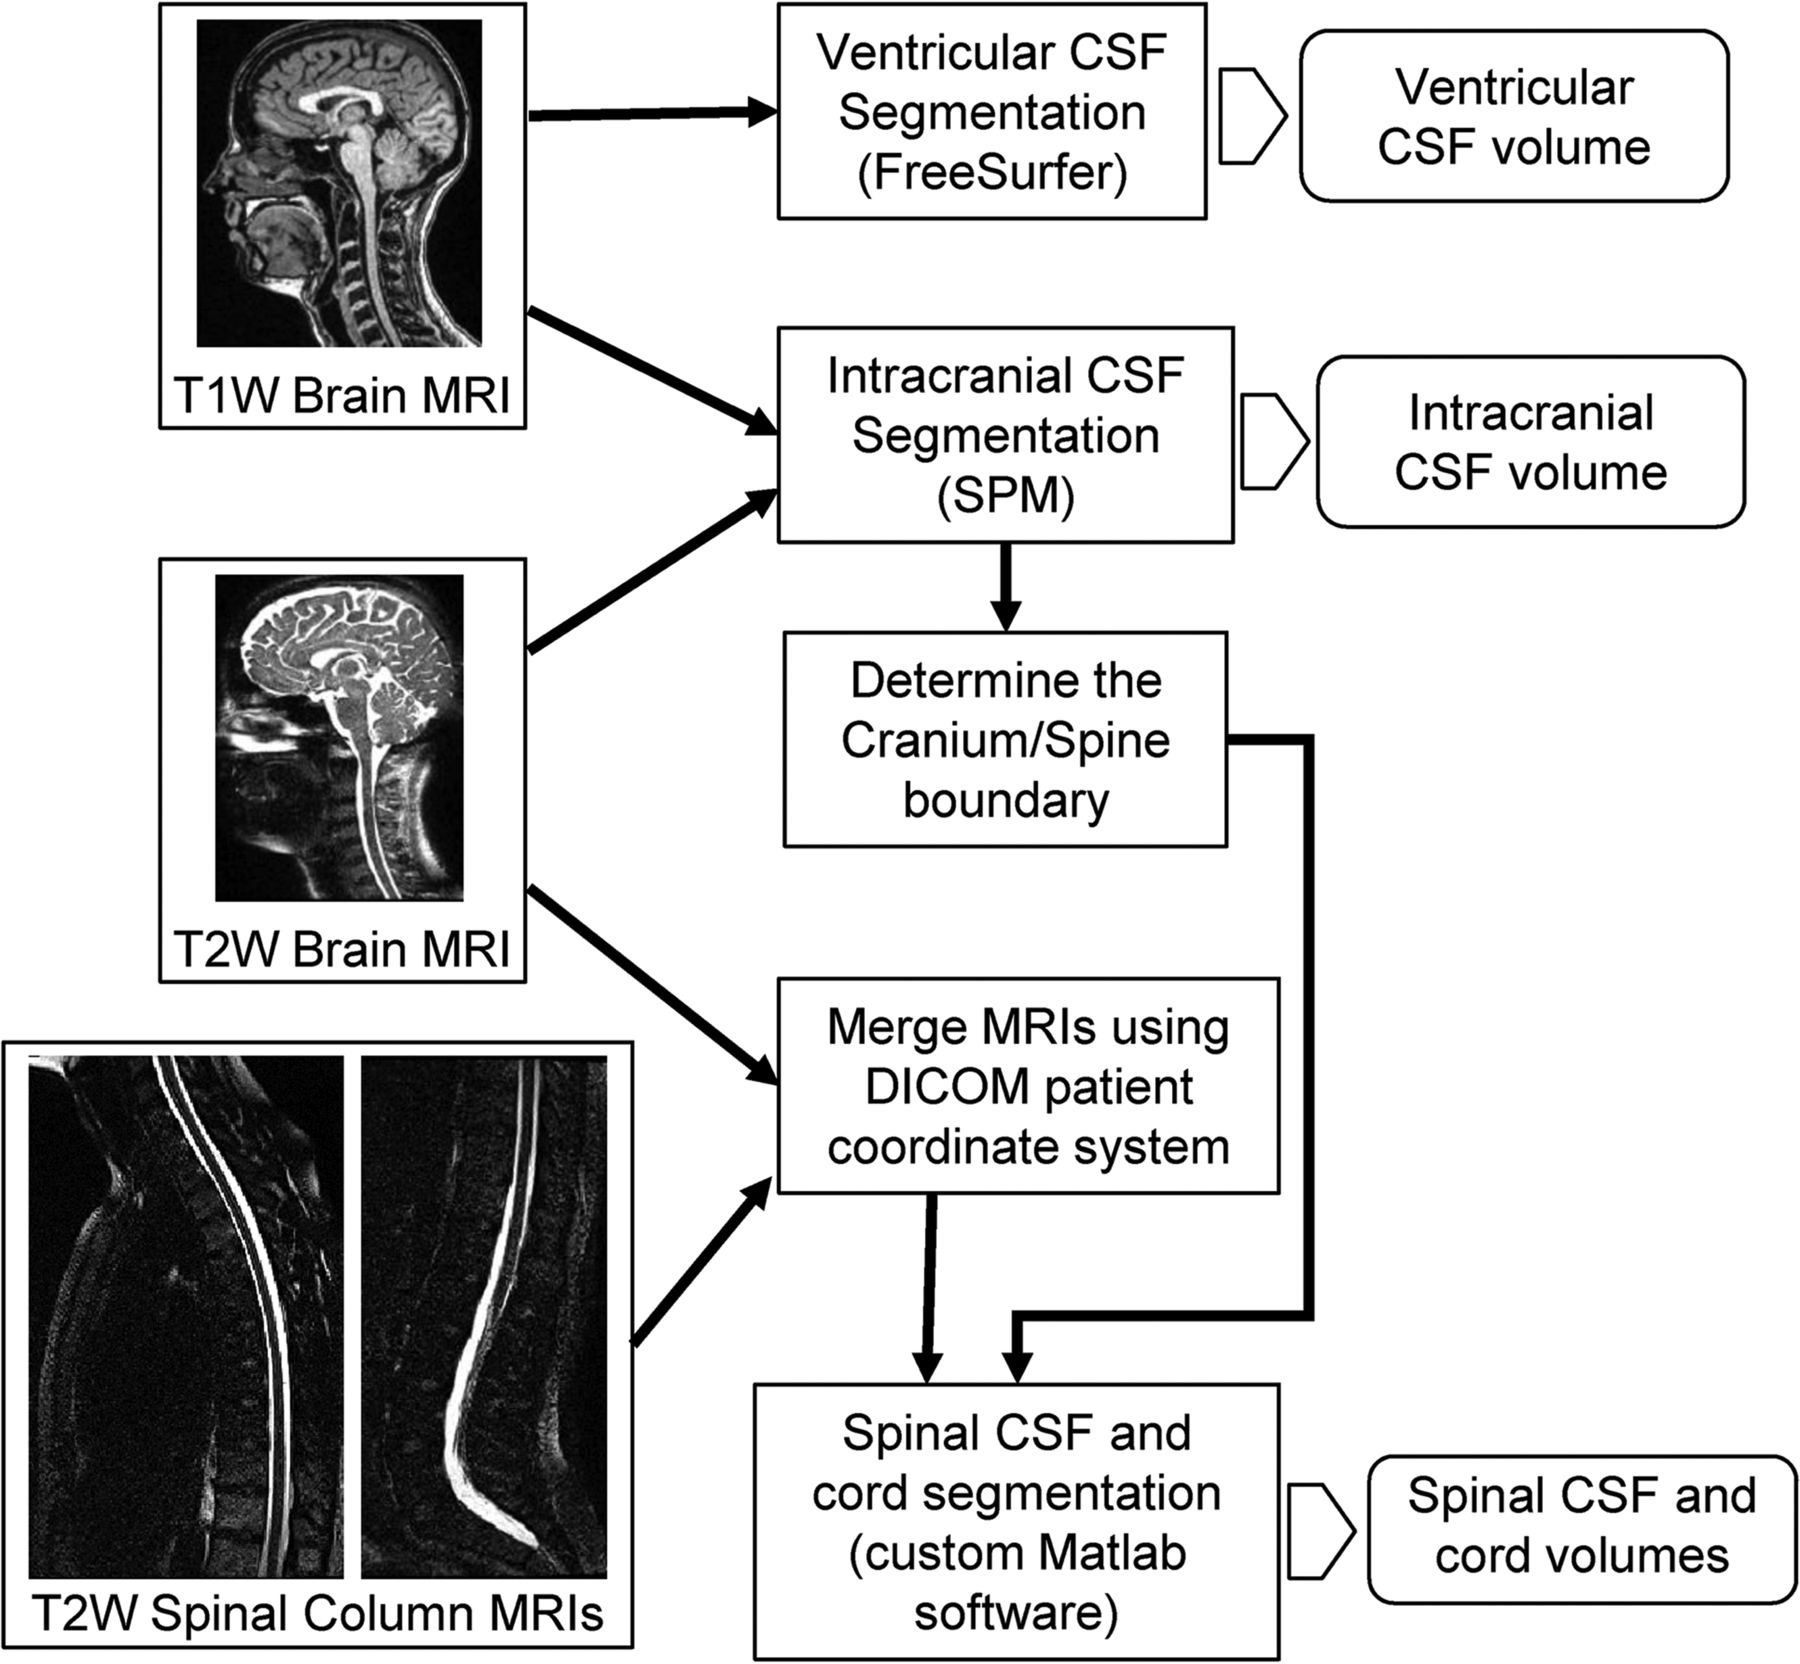 Automated Quantitation of Spinal CSF Volume and Measurement